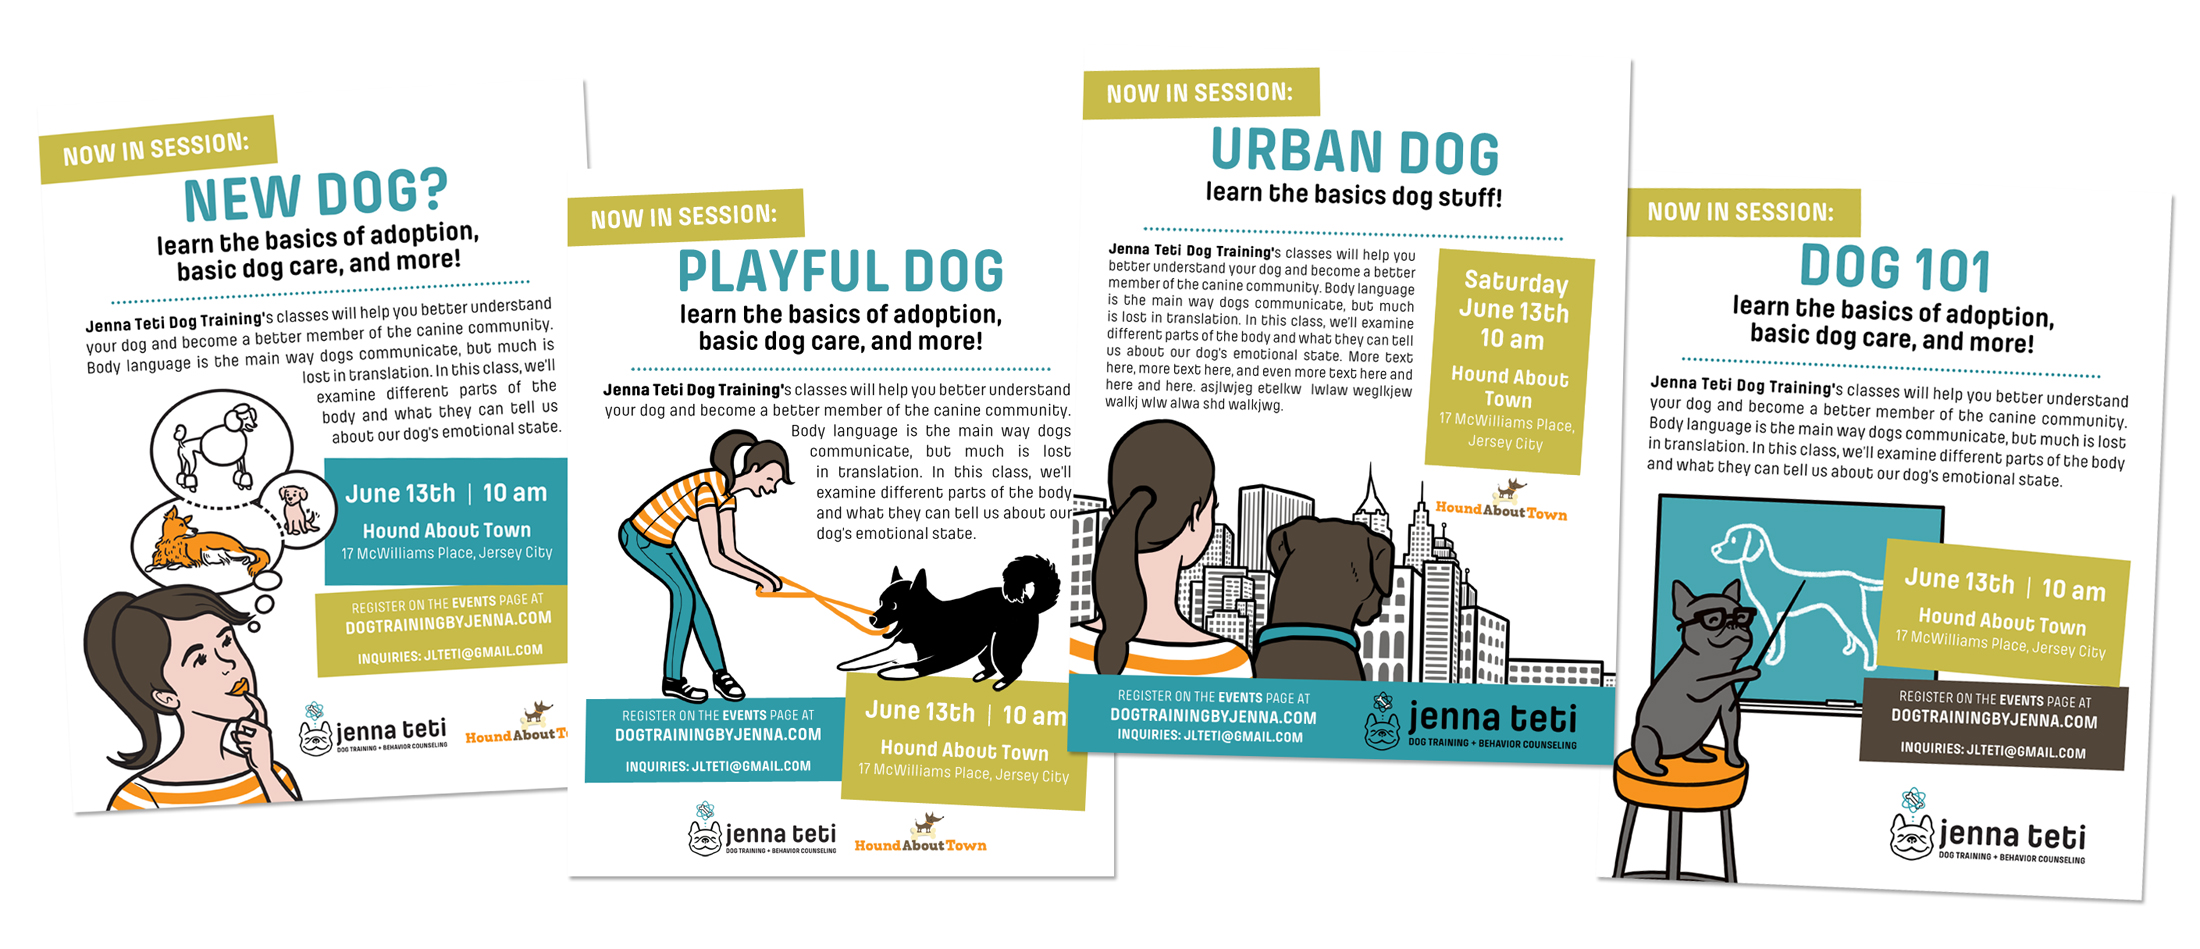 This series of flyers consists of Photoshop templates that can be easily updated to include new course descriptions of varying lengths (the text you see here is just temporary filler text), updated when/where info, and includes various options for including additional event sponsors. The nice thing about templates is that they can be easily updated by the client themselves while maintaining their original format and style.